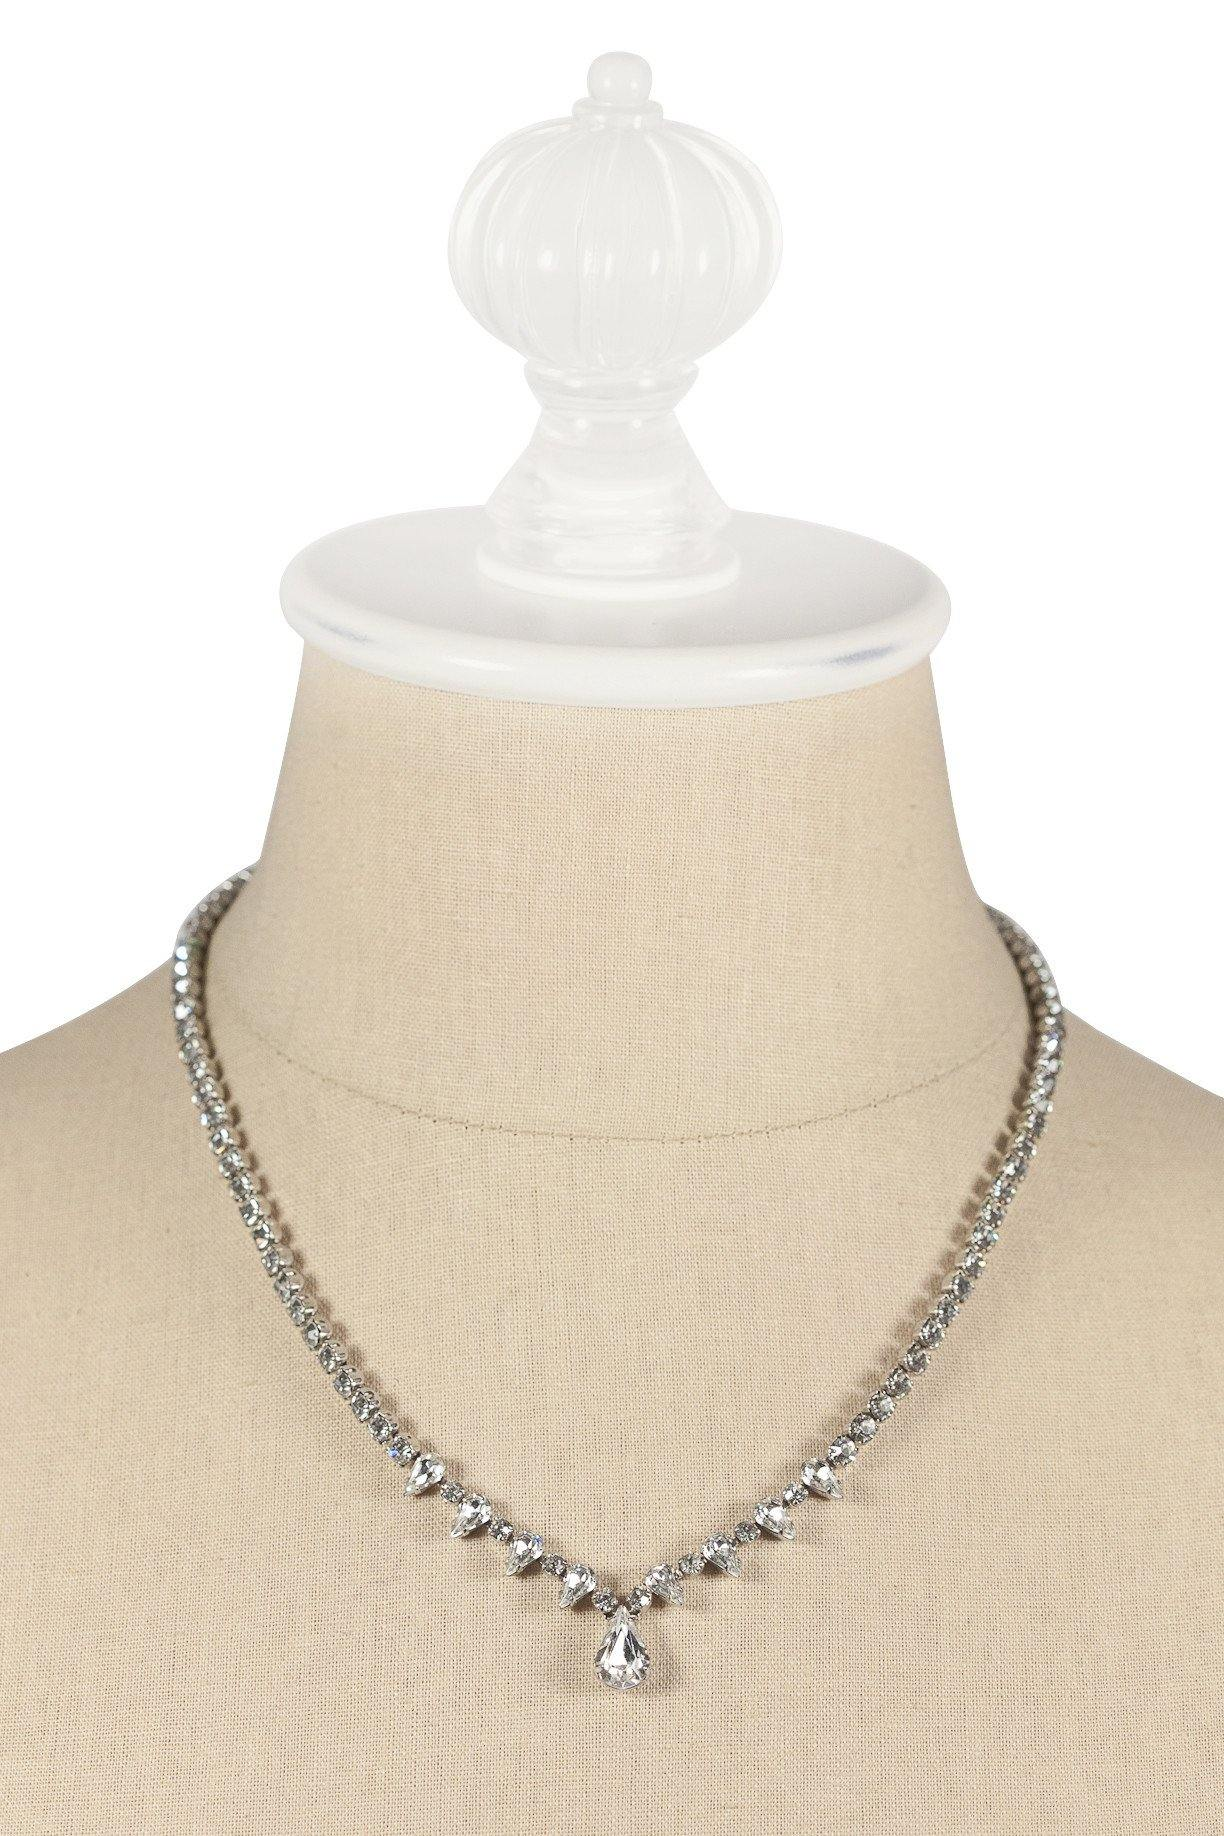 50's__Kramer__Edgy Rhinestone Drop Necklace